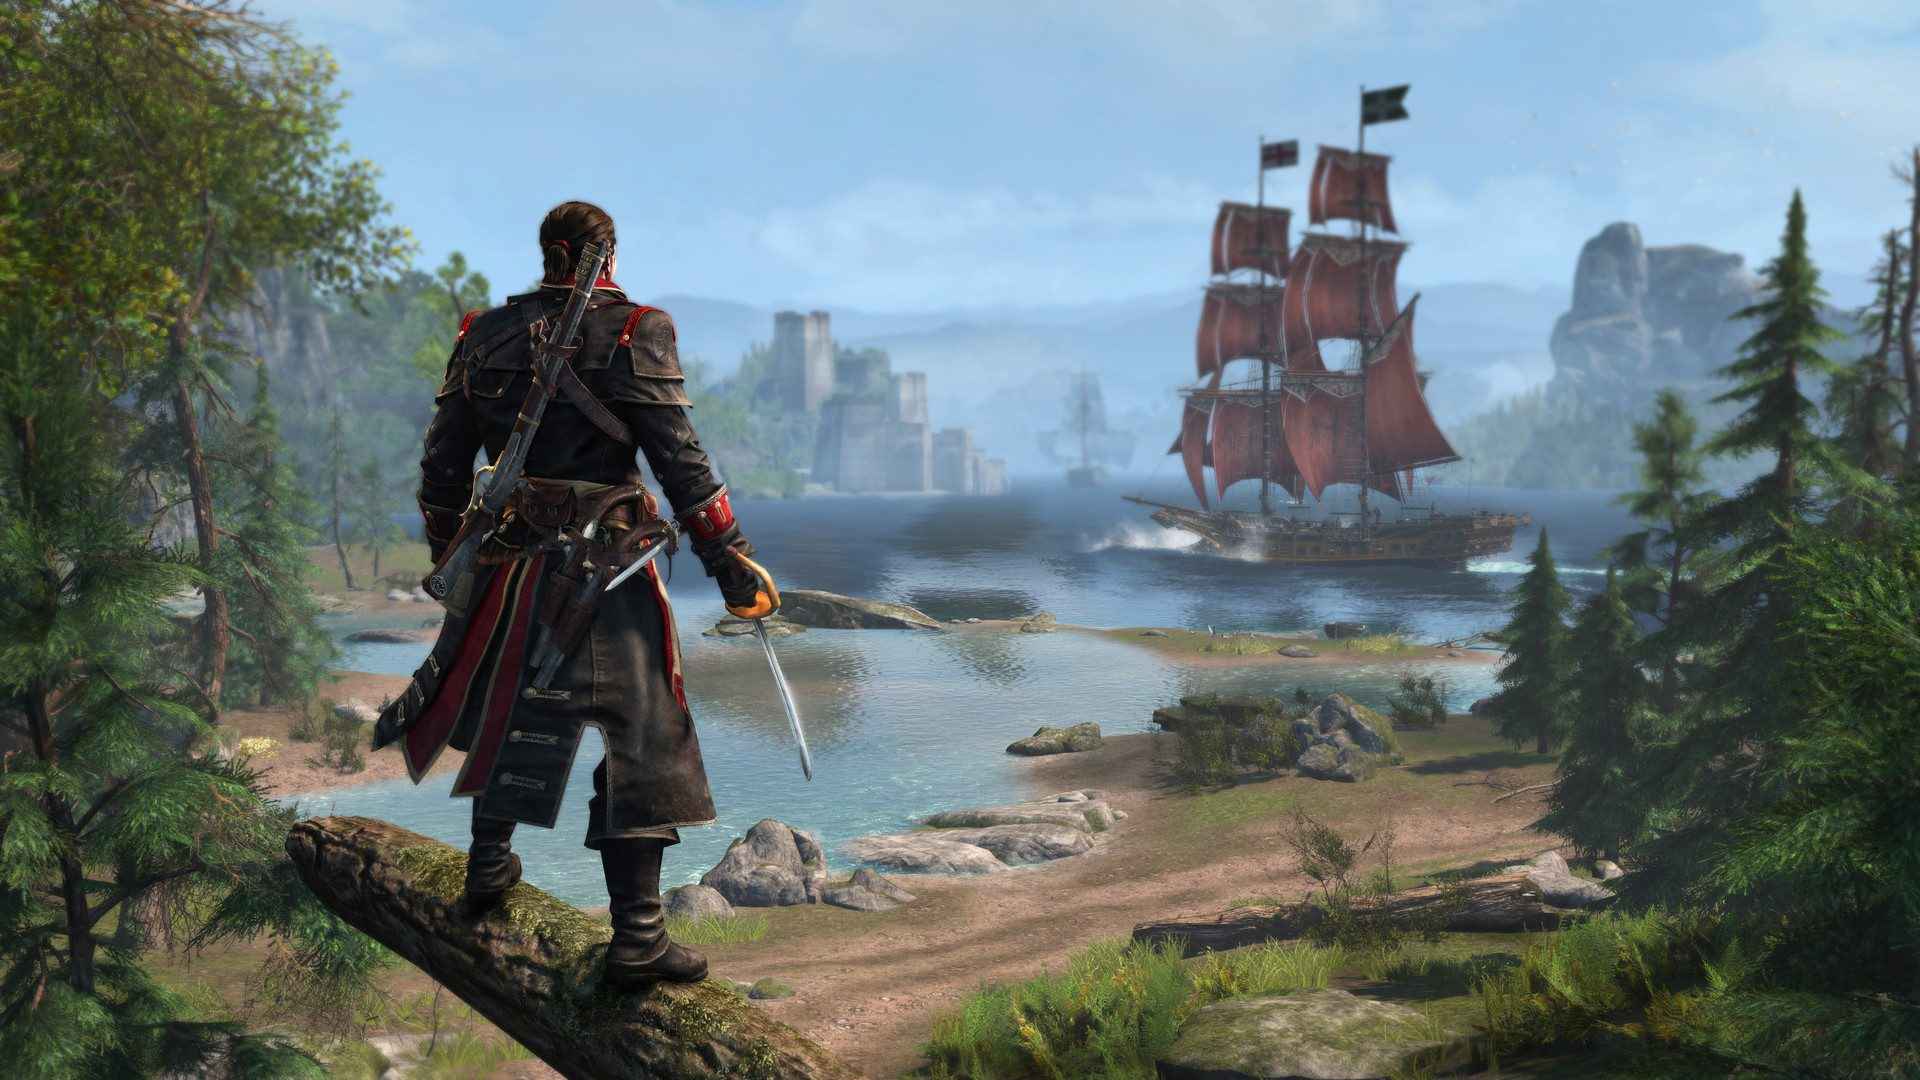 Prepare Your Rig for the Upcoming Release of Assassin's Creed Rogue